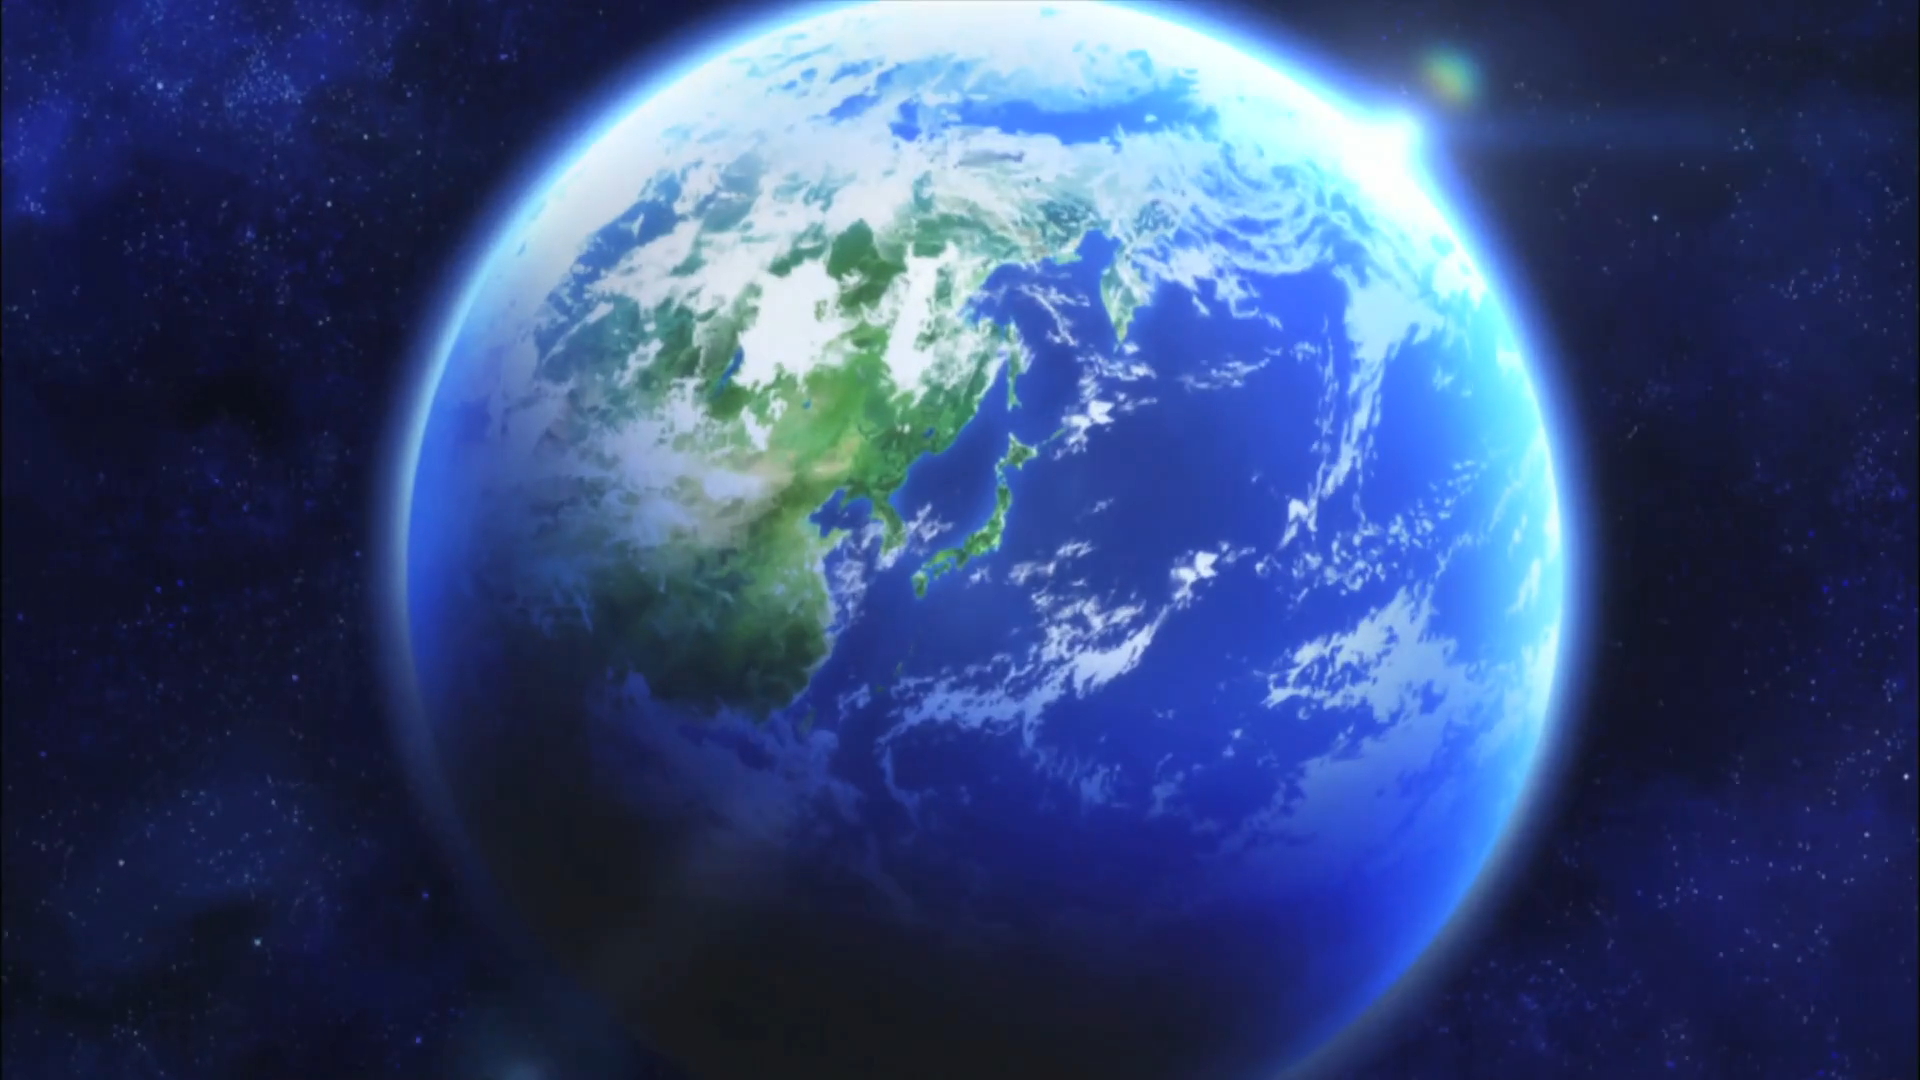 animated planet earth - photo #38